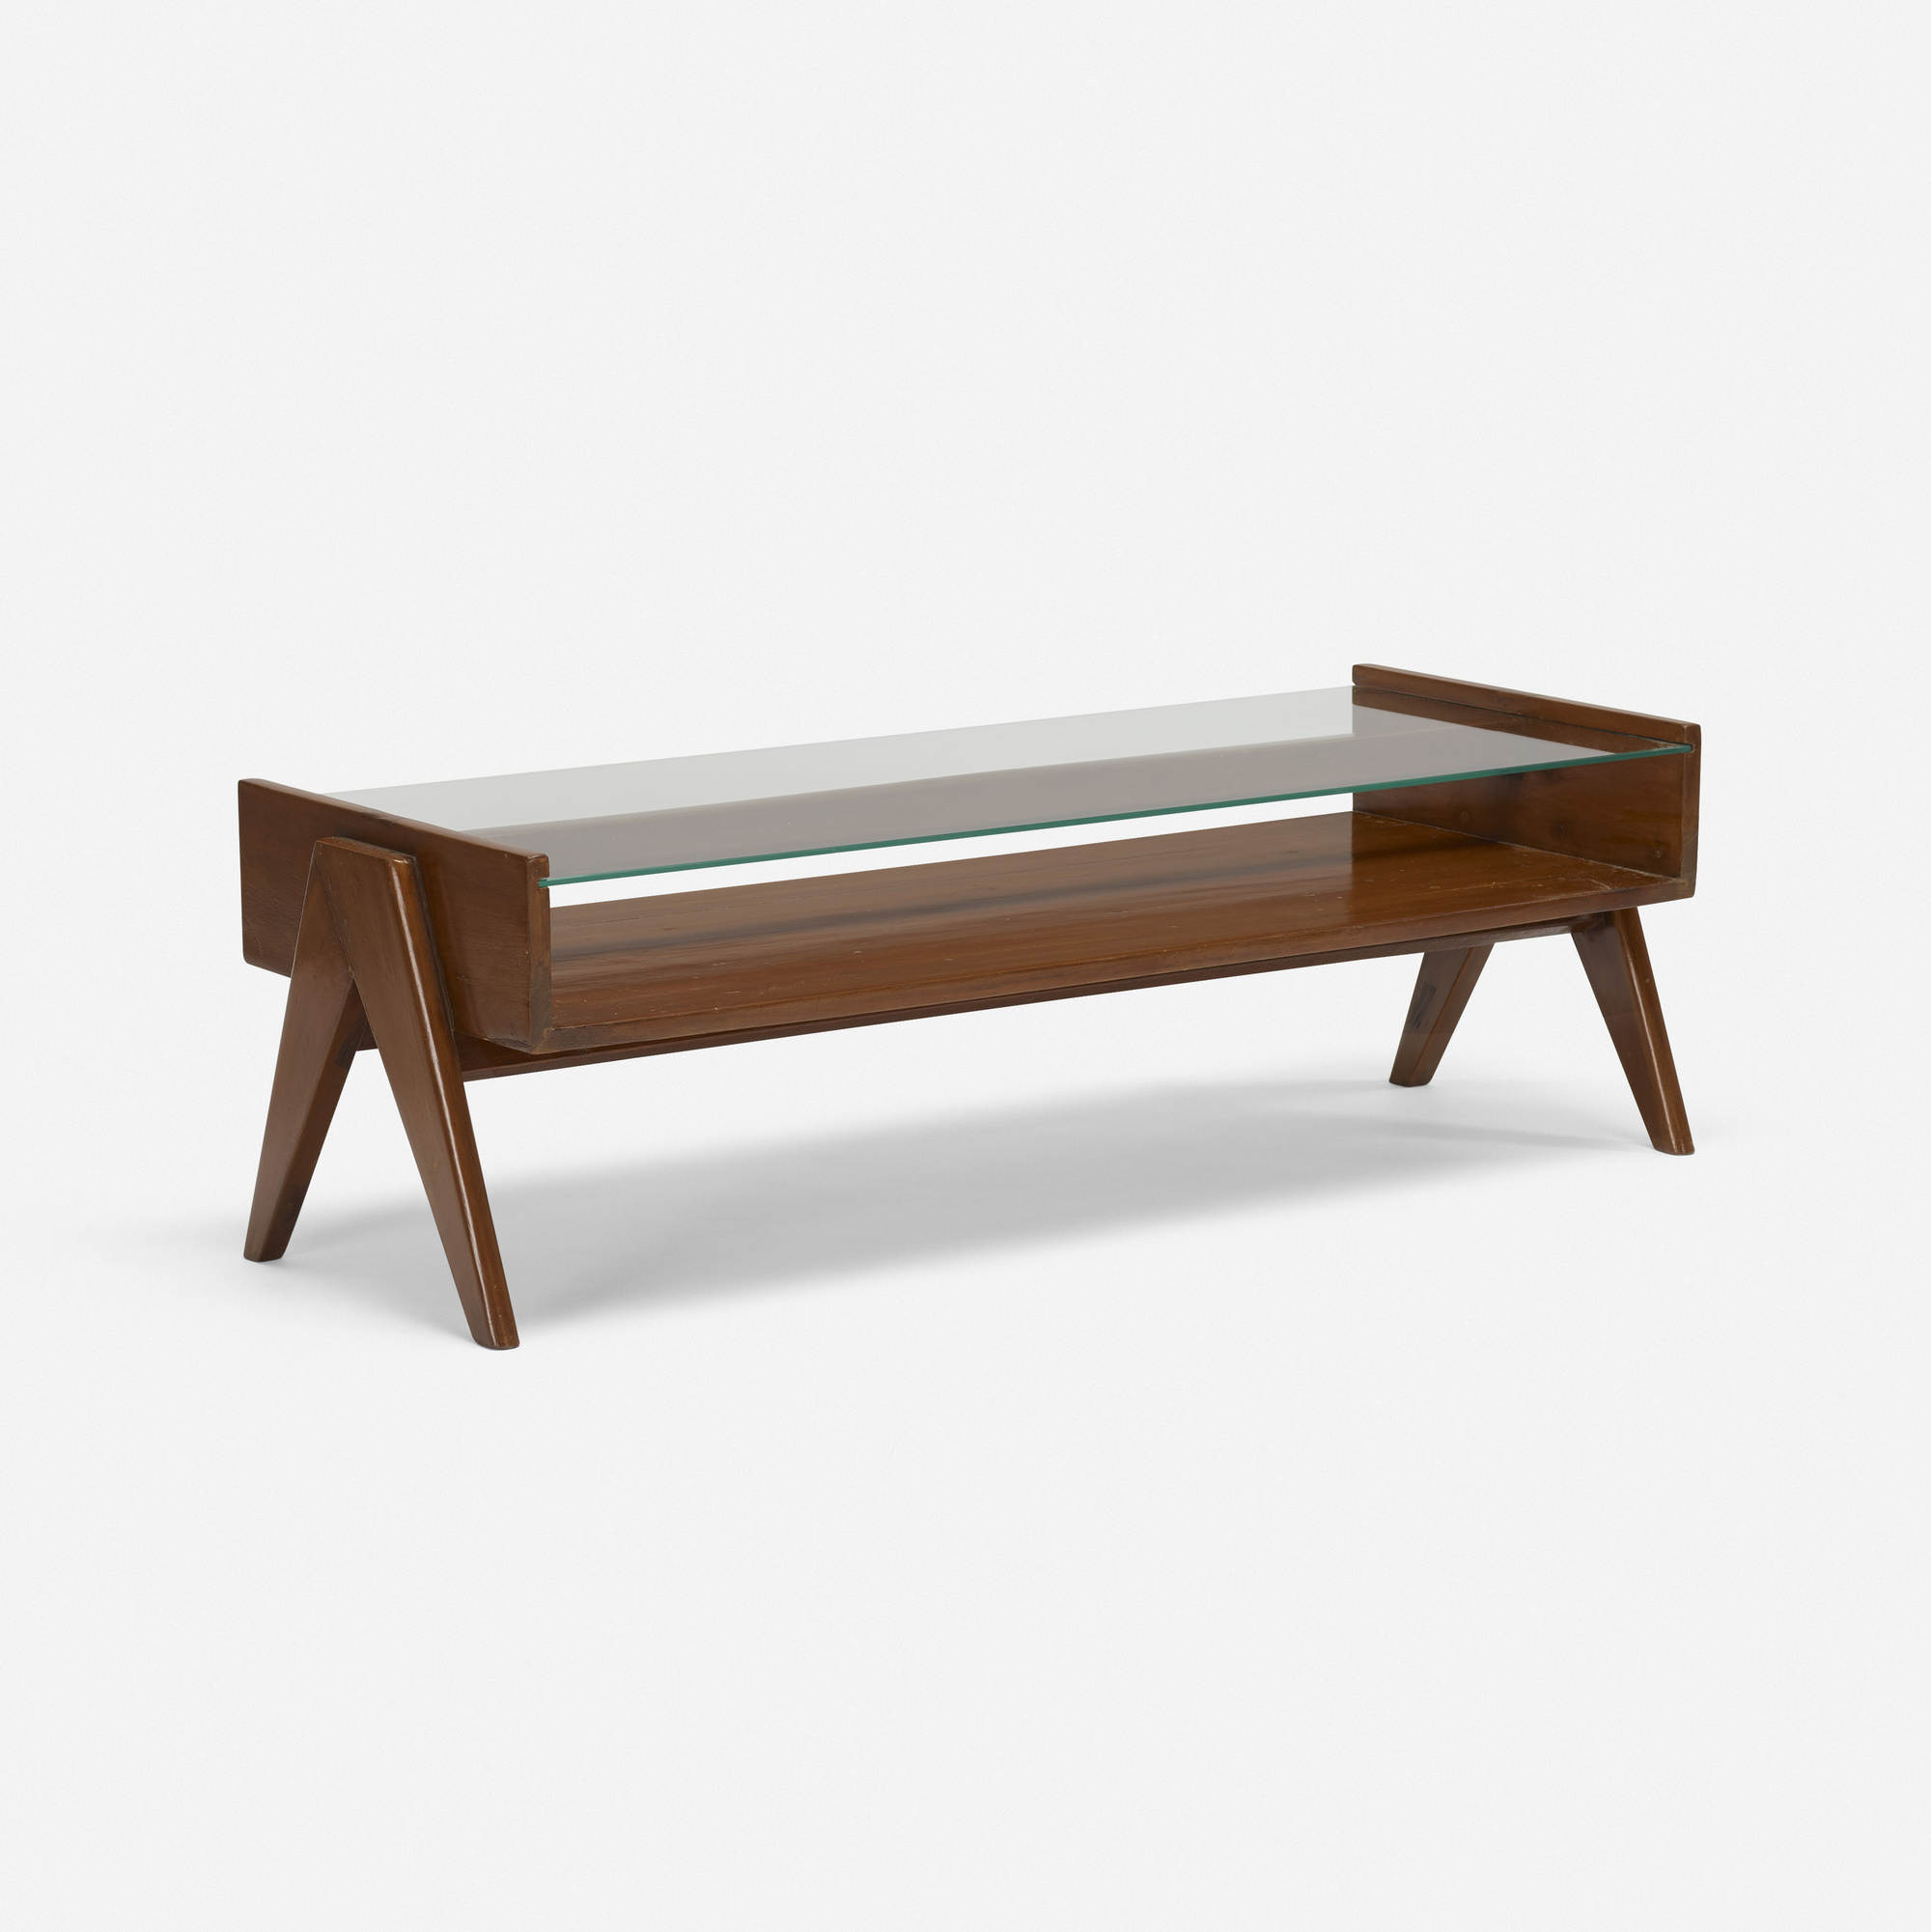 156 PIERRE JEANNERET coffee table from Chandigarh Design 23